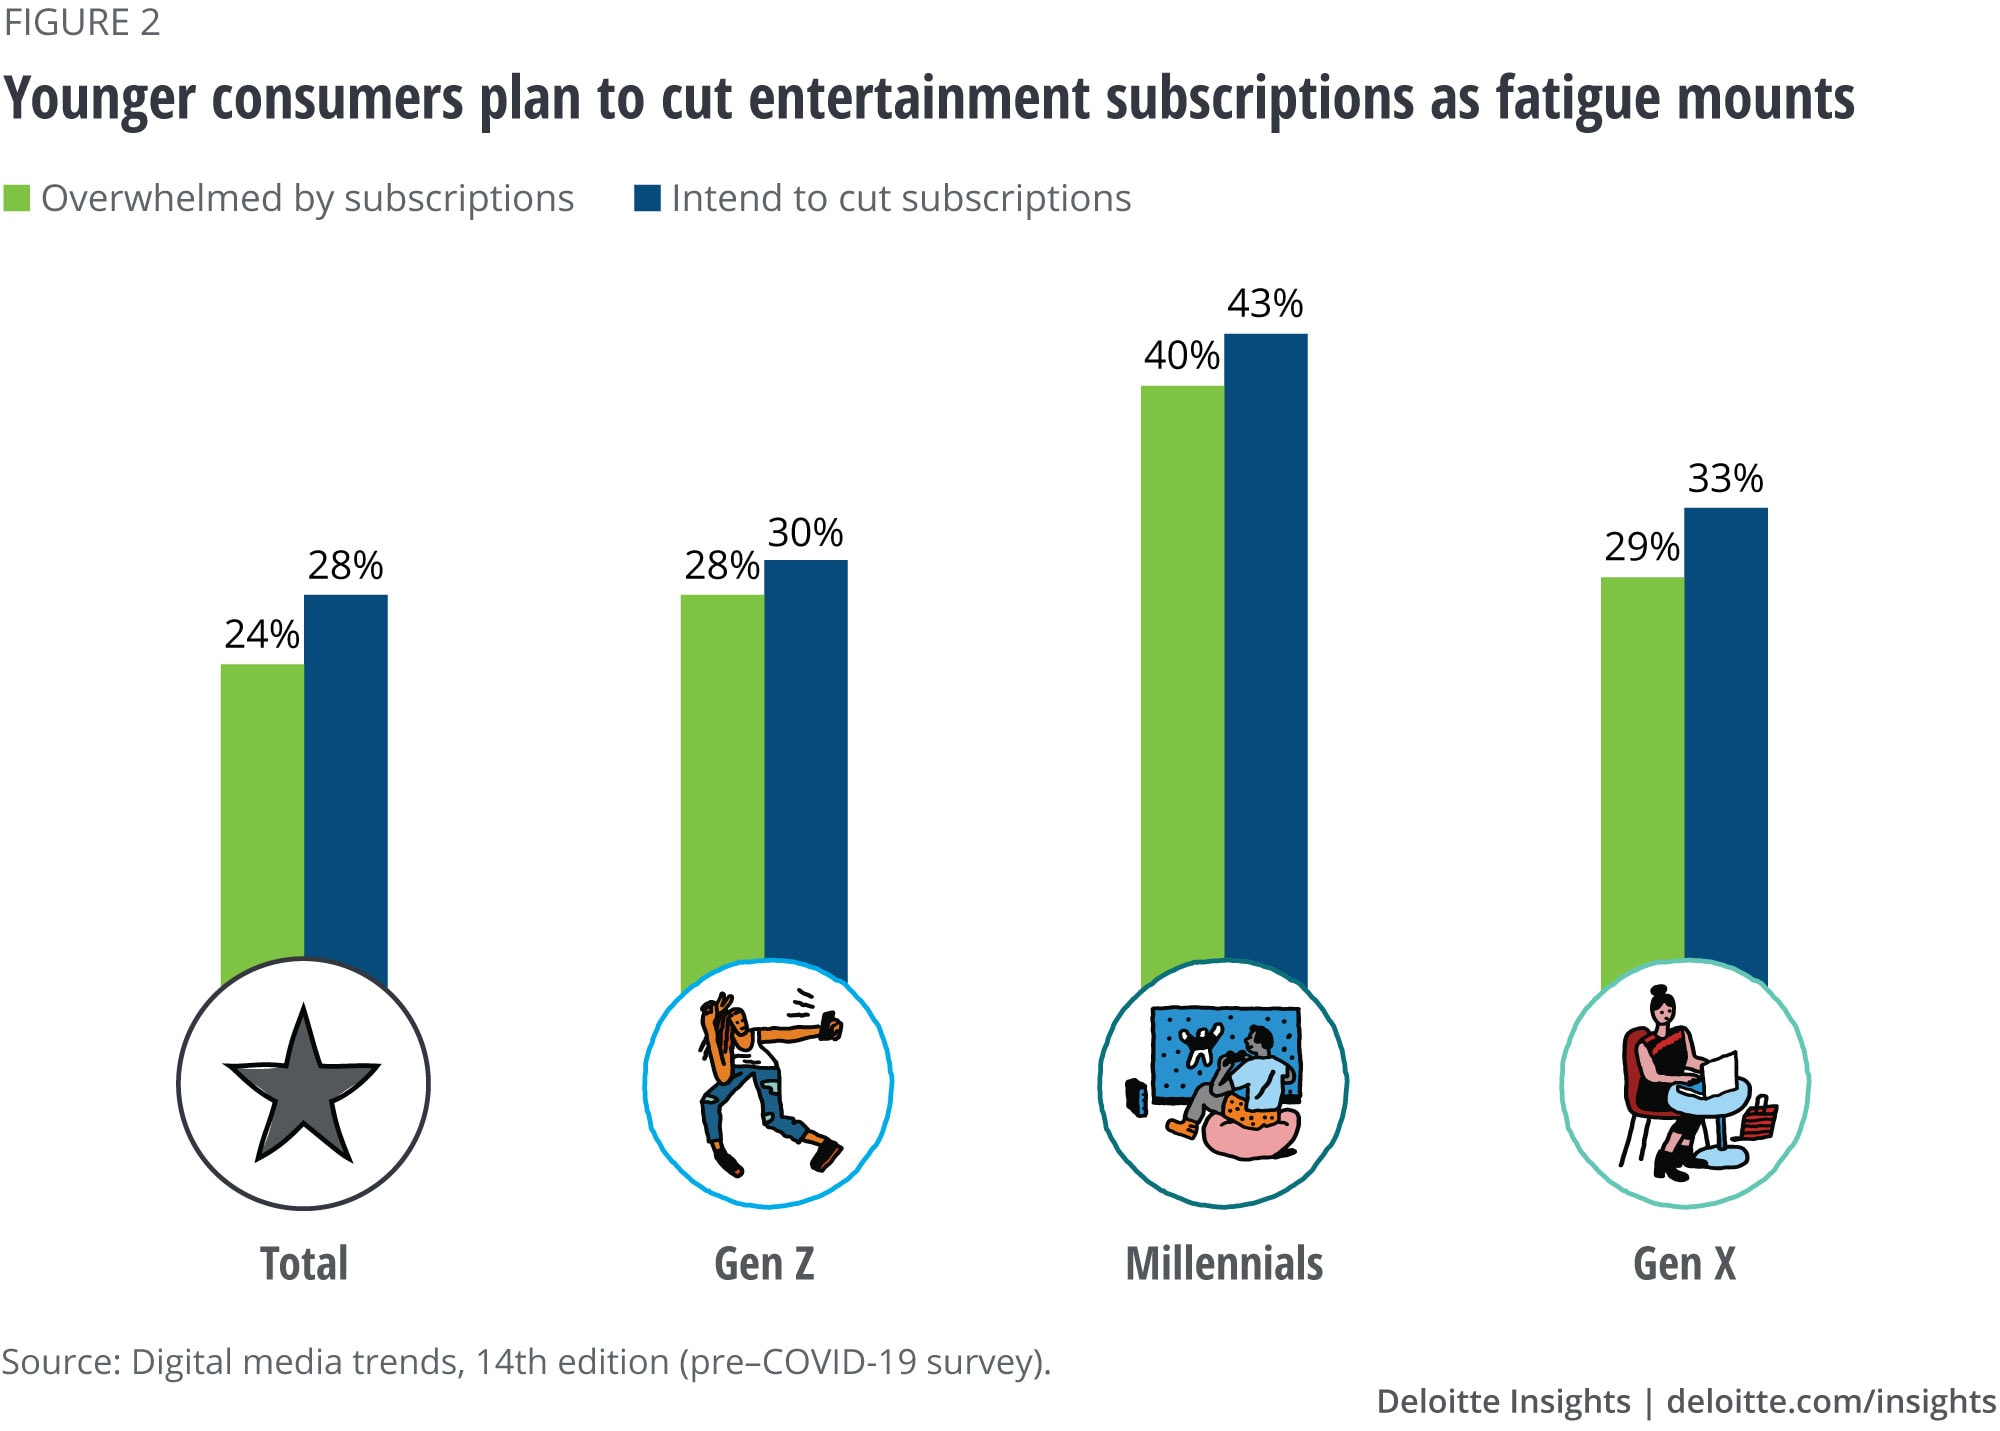 Younger consumers plan to cut subscriptions as fatigue mounts